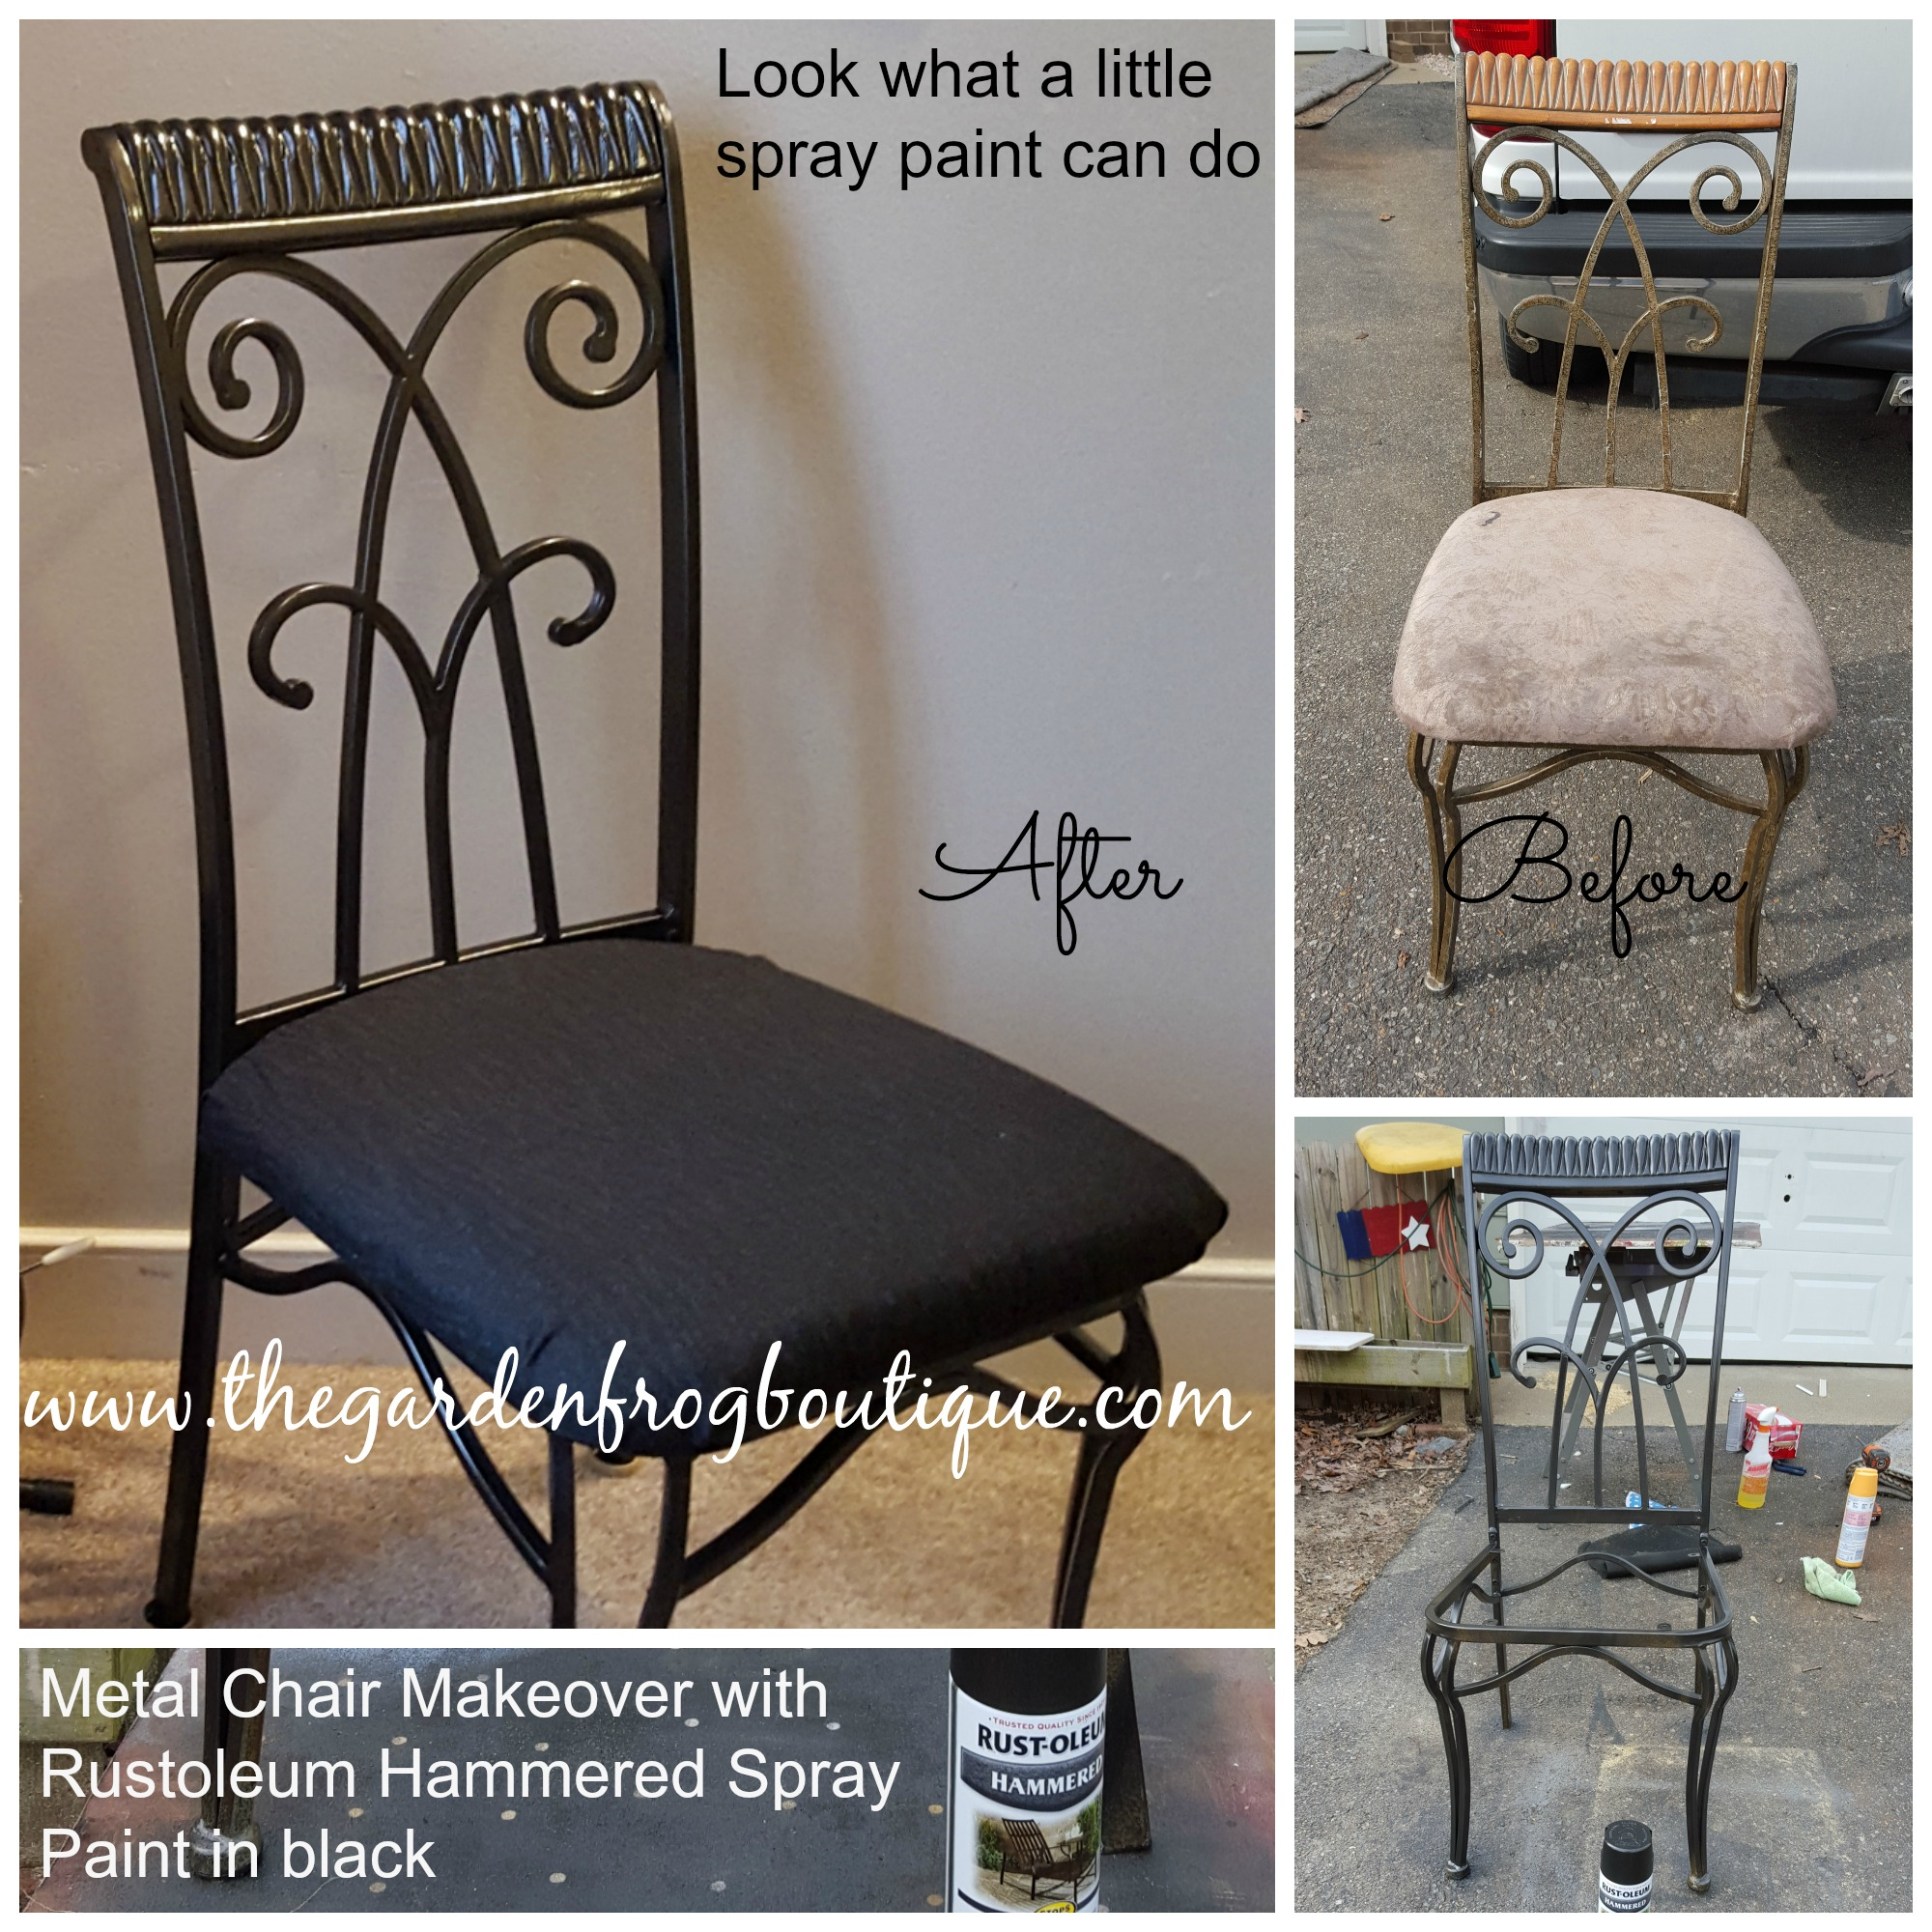 Delicieux Metal Chair Makeover With Rustoleum Hammered Spray Paint   The Garden Frog  Boutique